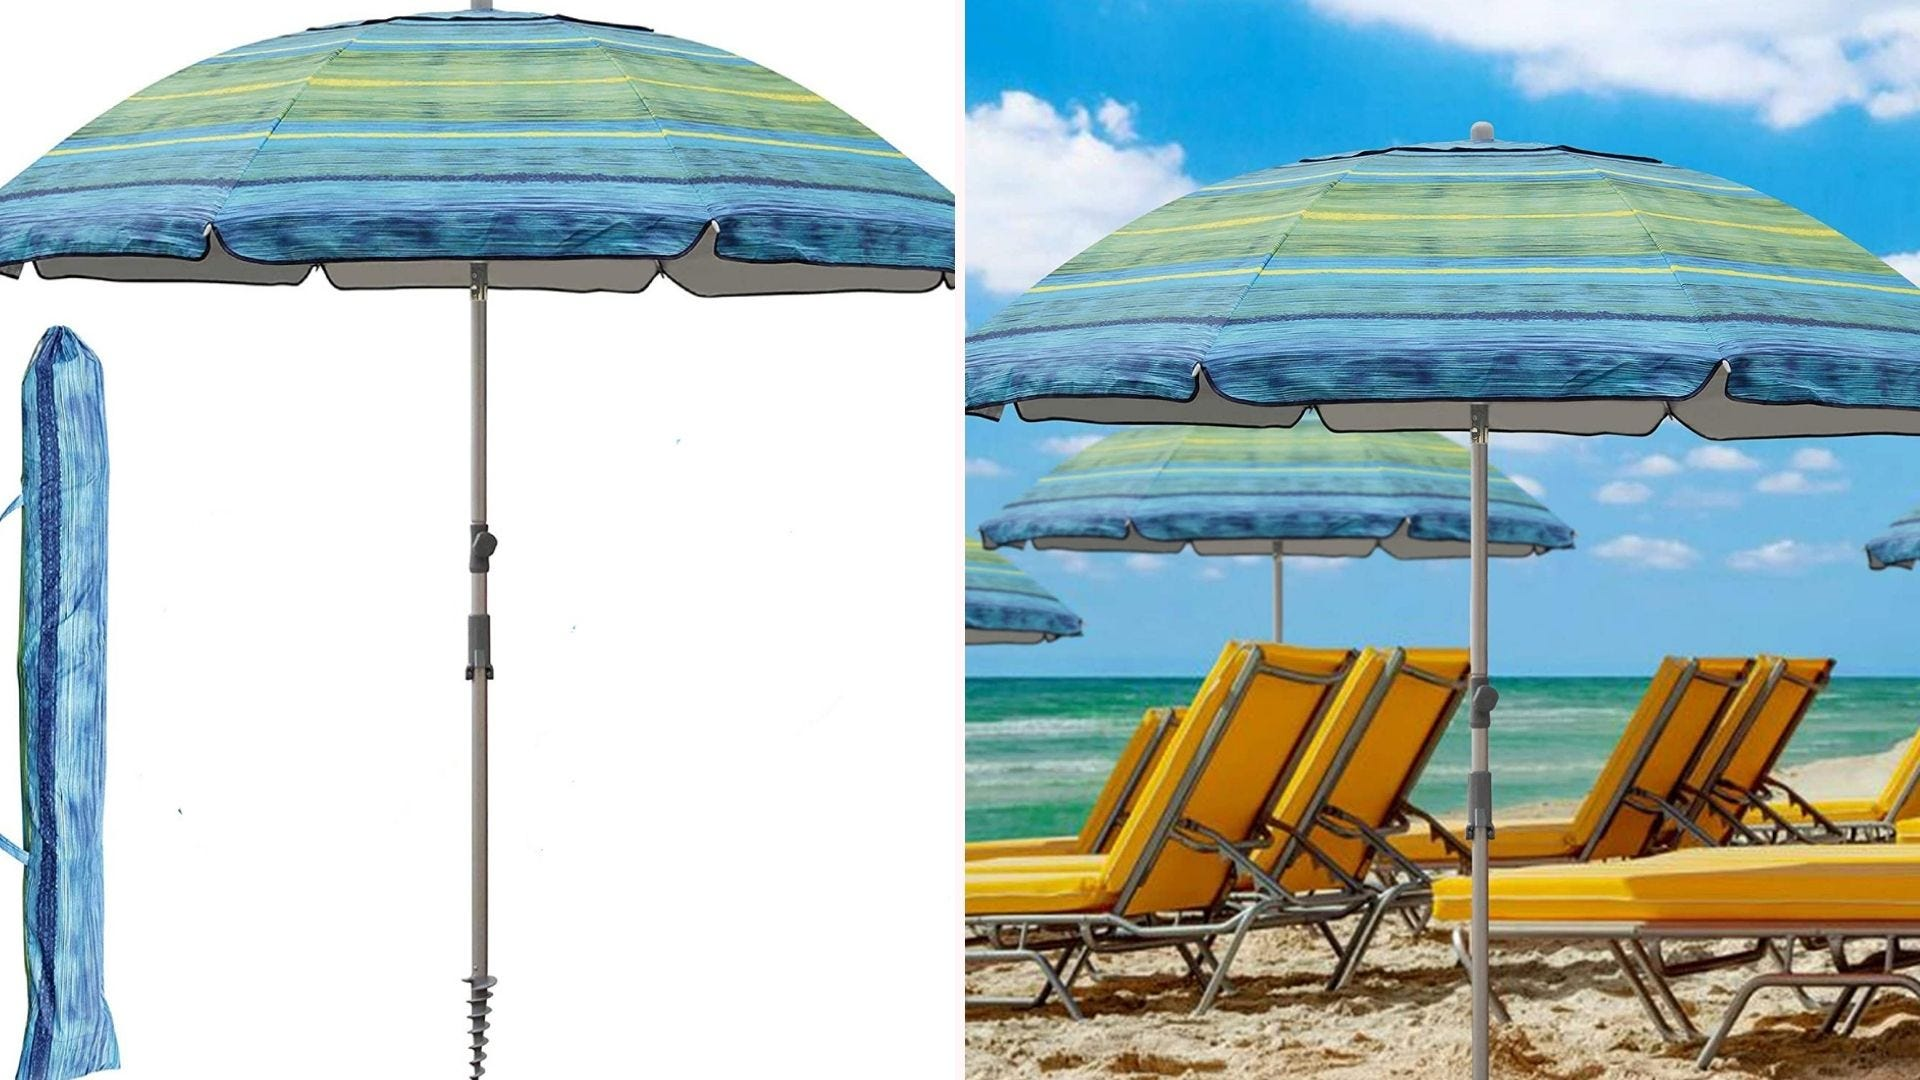 a blue and green beach umbrella shown with a carrying case and set up on a beach